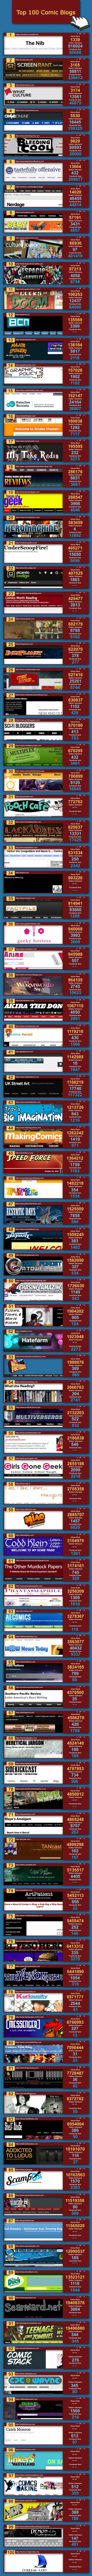 Infographic - Top 100 Comic Blogs